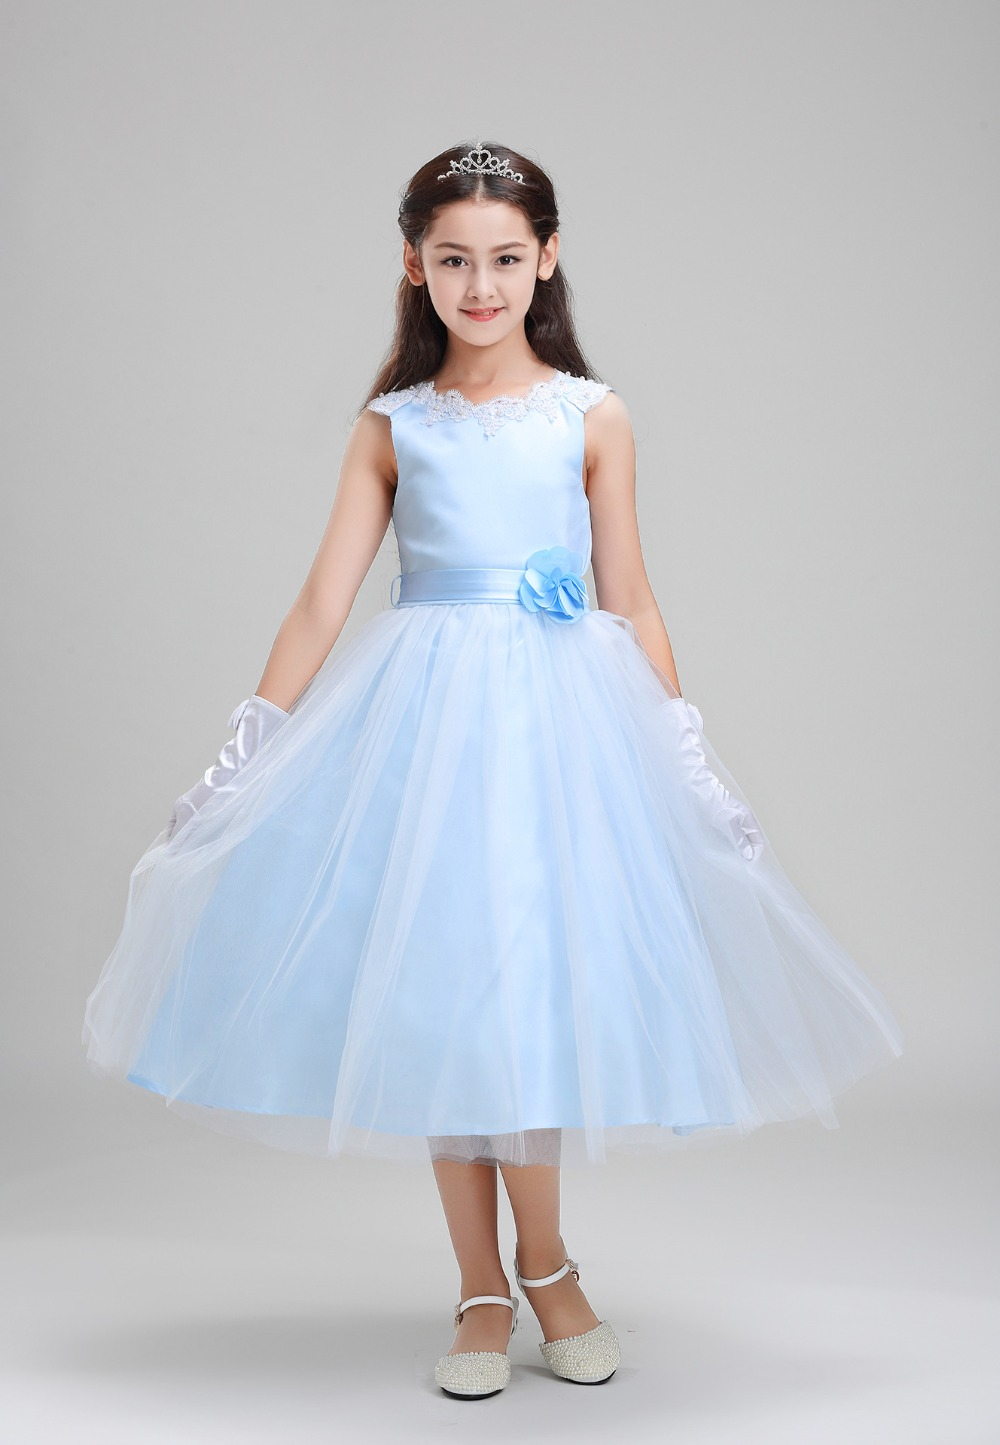 Ankle-Length Summer Elegant Blue Lace Flower Wedding Girl Party Dresses Kids Teenagers Ball Gown Holy Communion Pageant Dress elegant flower lace lacut cut wedding invitations set blank ppaer printing invitation cards kit casamento convite pocket